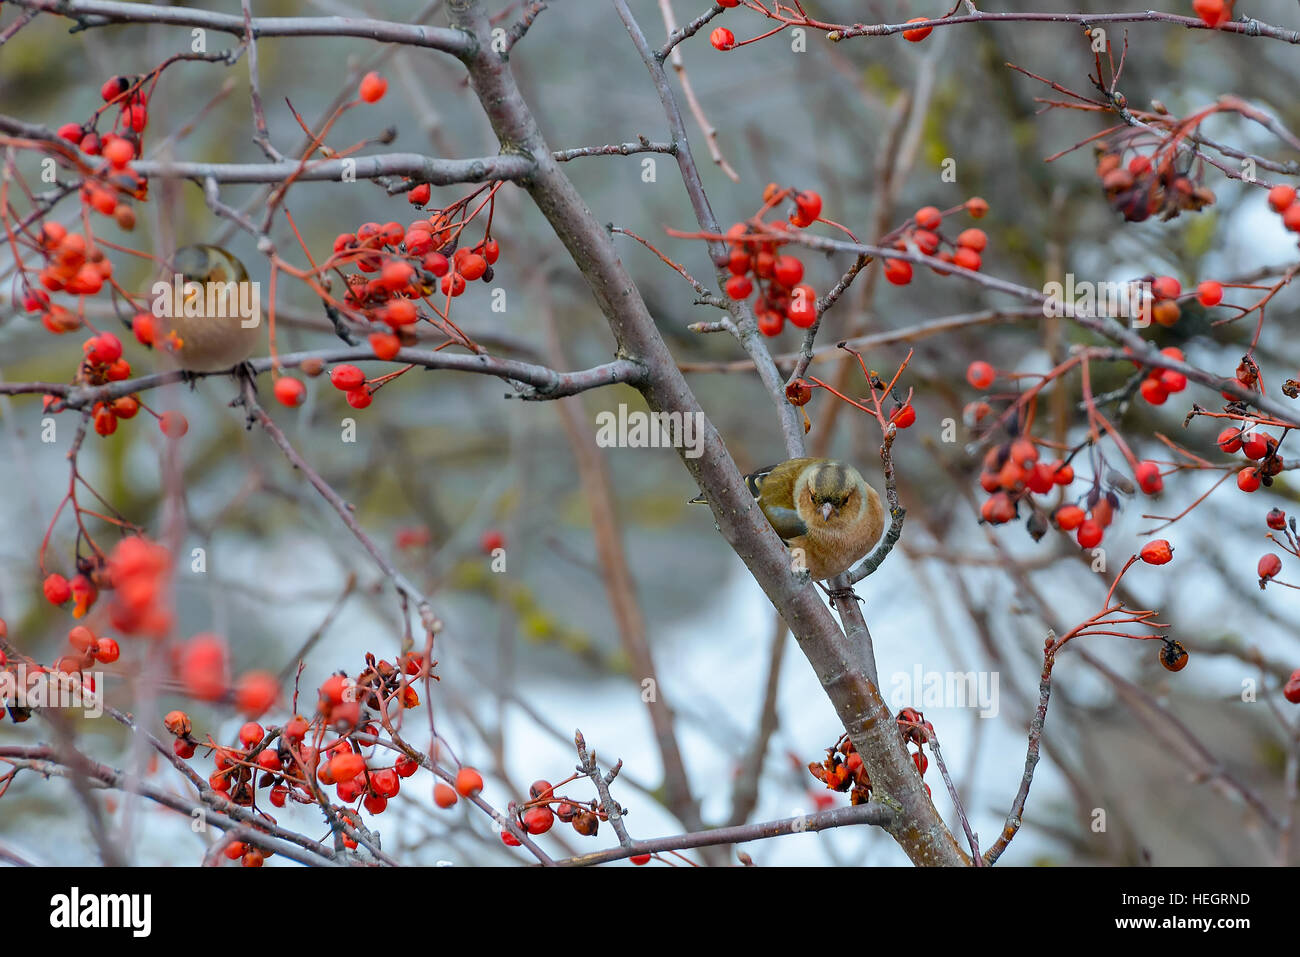 Chaffinches sitting on rowan branches - Stock Image